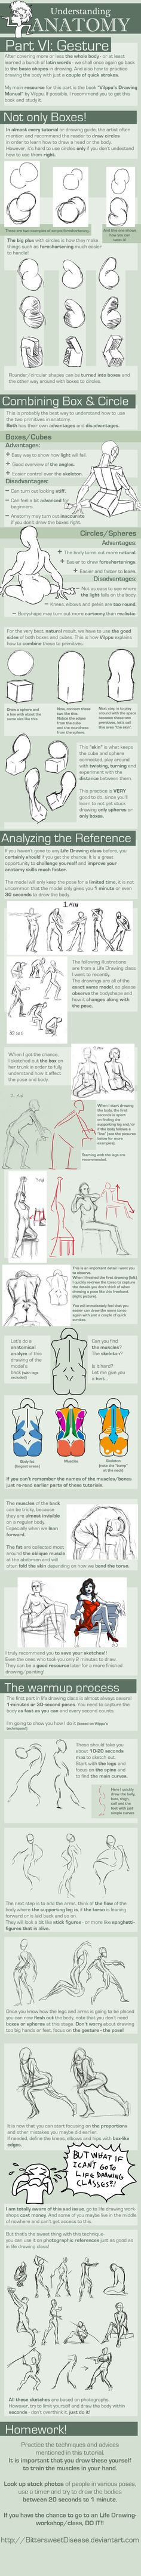 UNDERSTANDING ANATOMY: part VI by FOERVRAENGD.deviantart.com on @deviantART